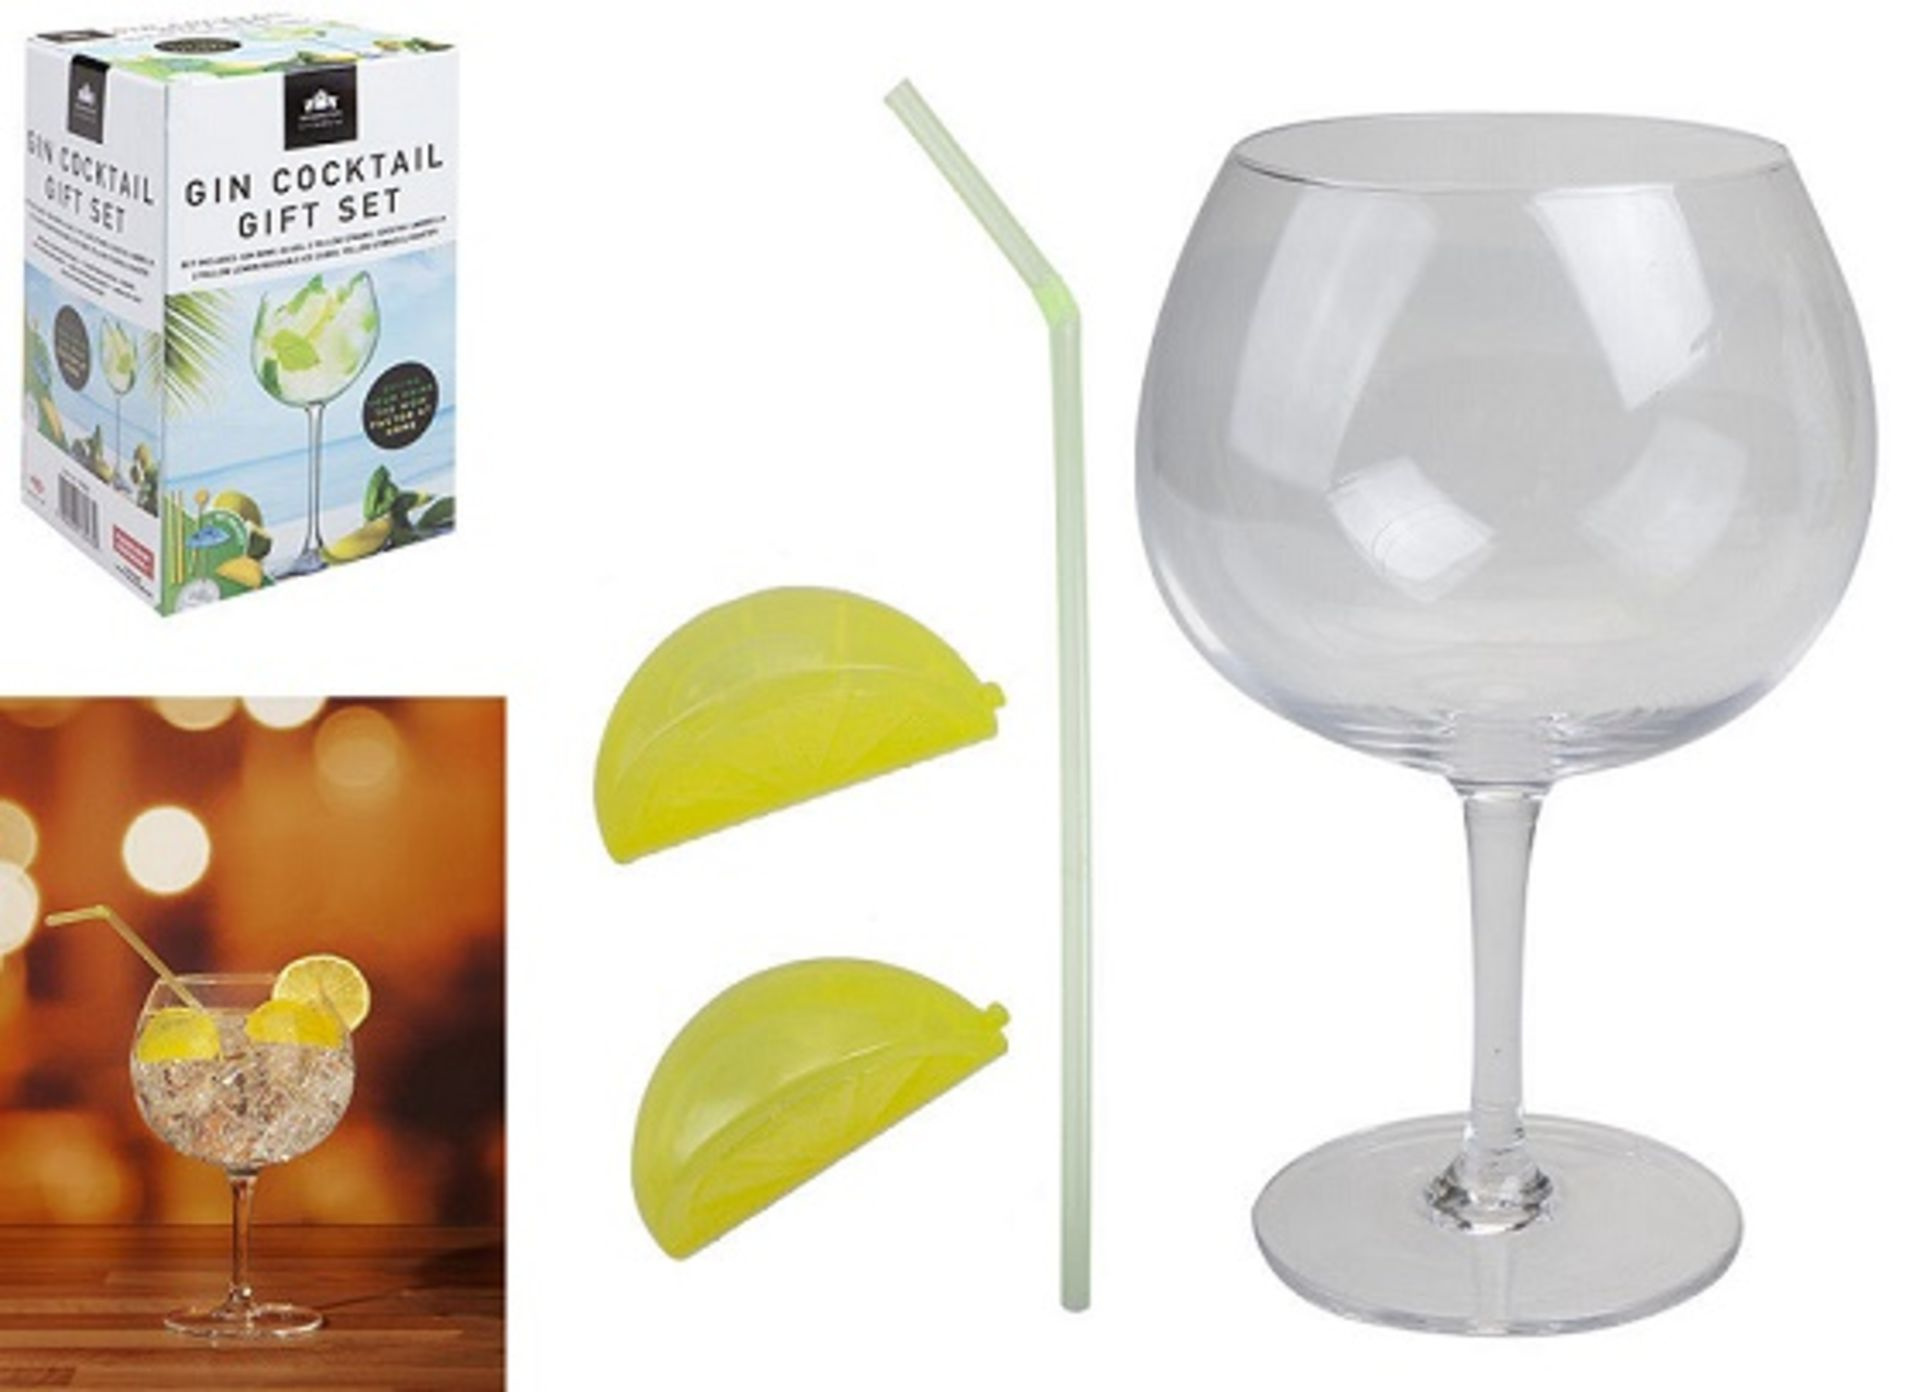 Lot 10705 - V Brand New Kensington Gin Cocktail Gift Set Includes Gin Bowl Glass-Straw-Two Lemon Reusable Ice